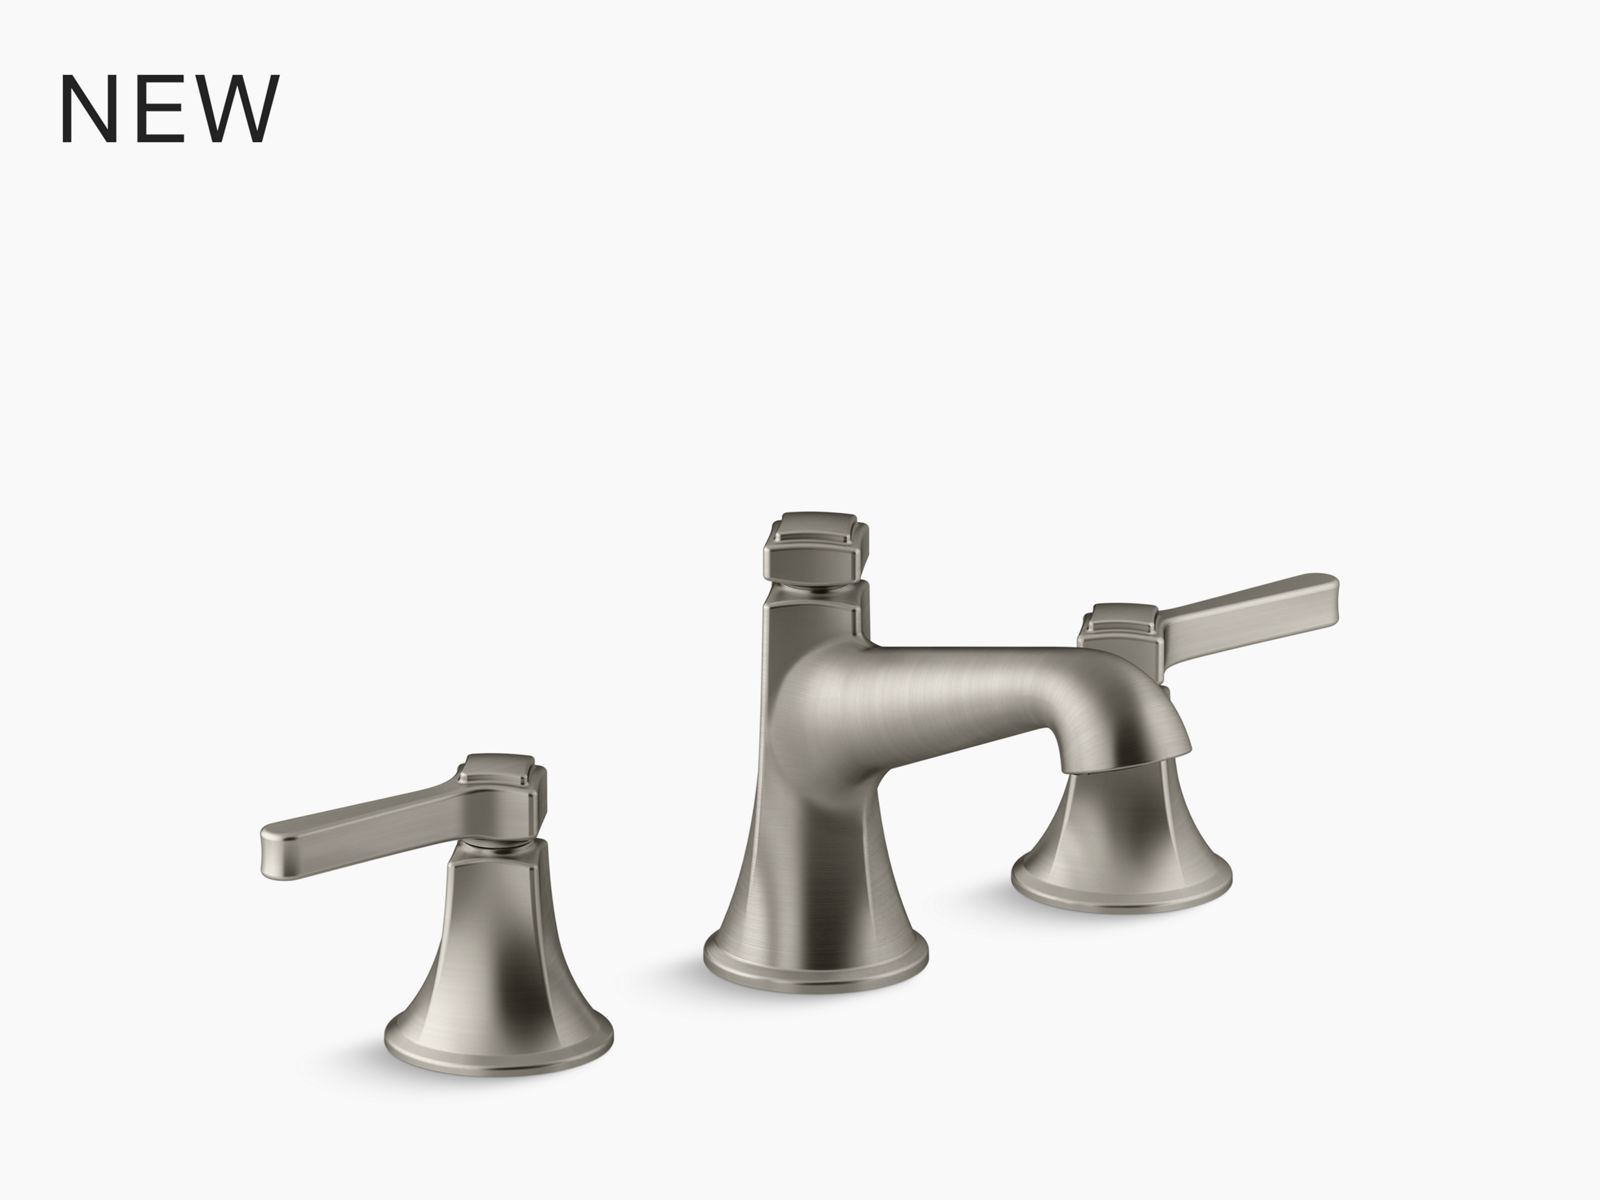 forte single hole kitchen sink faucet with 9 1 16 spout